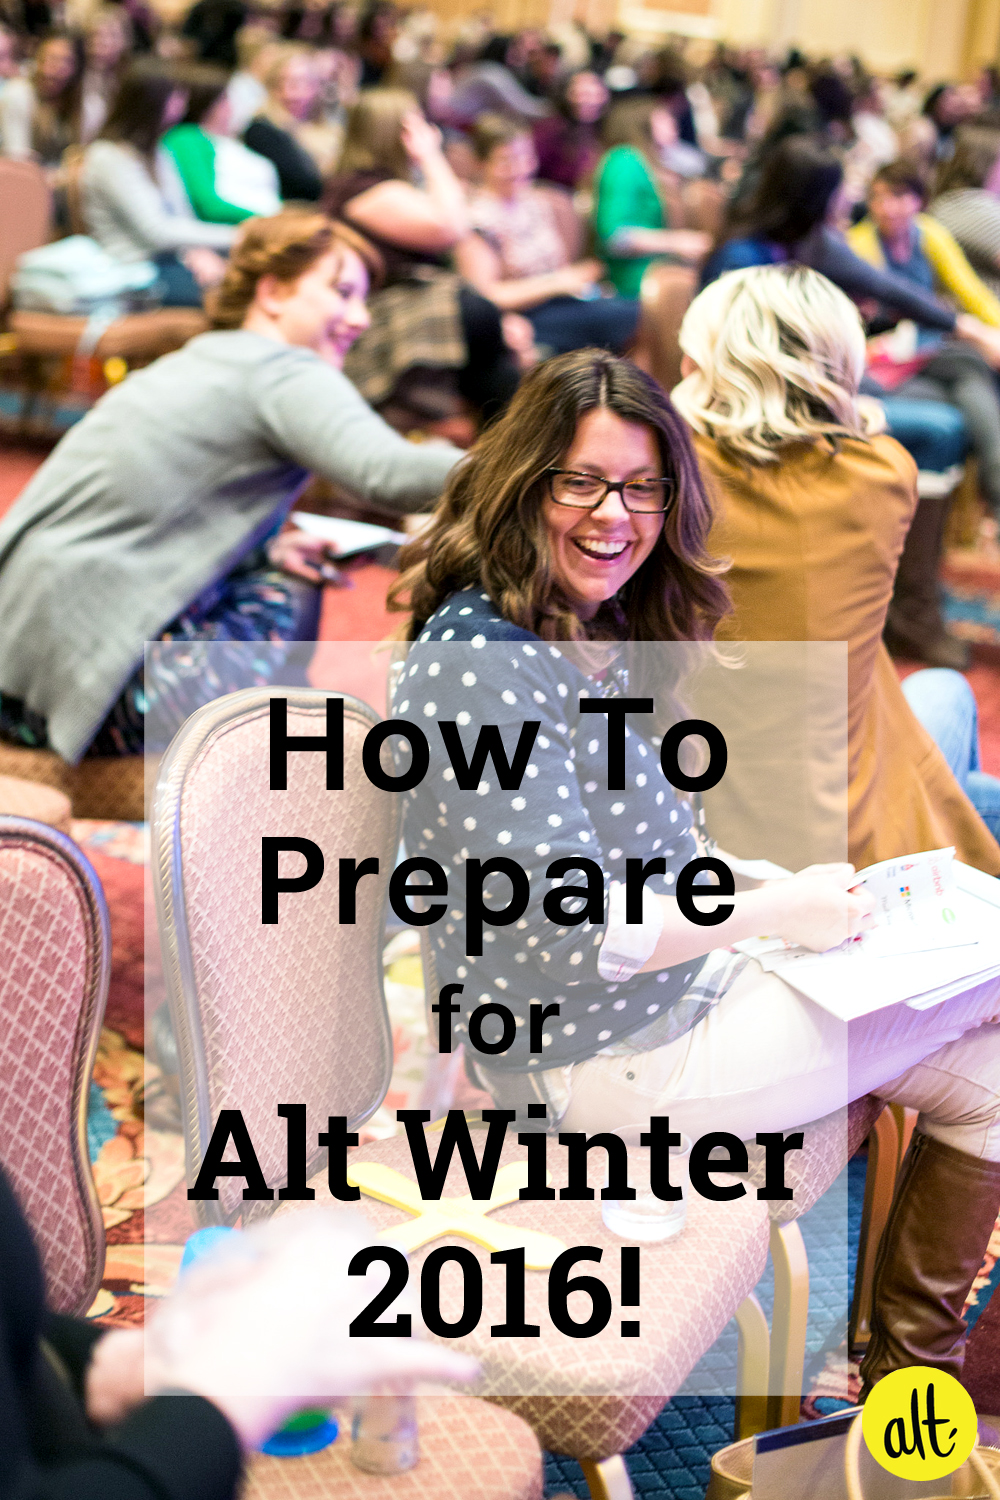 three things you can do today to prepare for Alt Summit 2016!